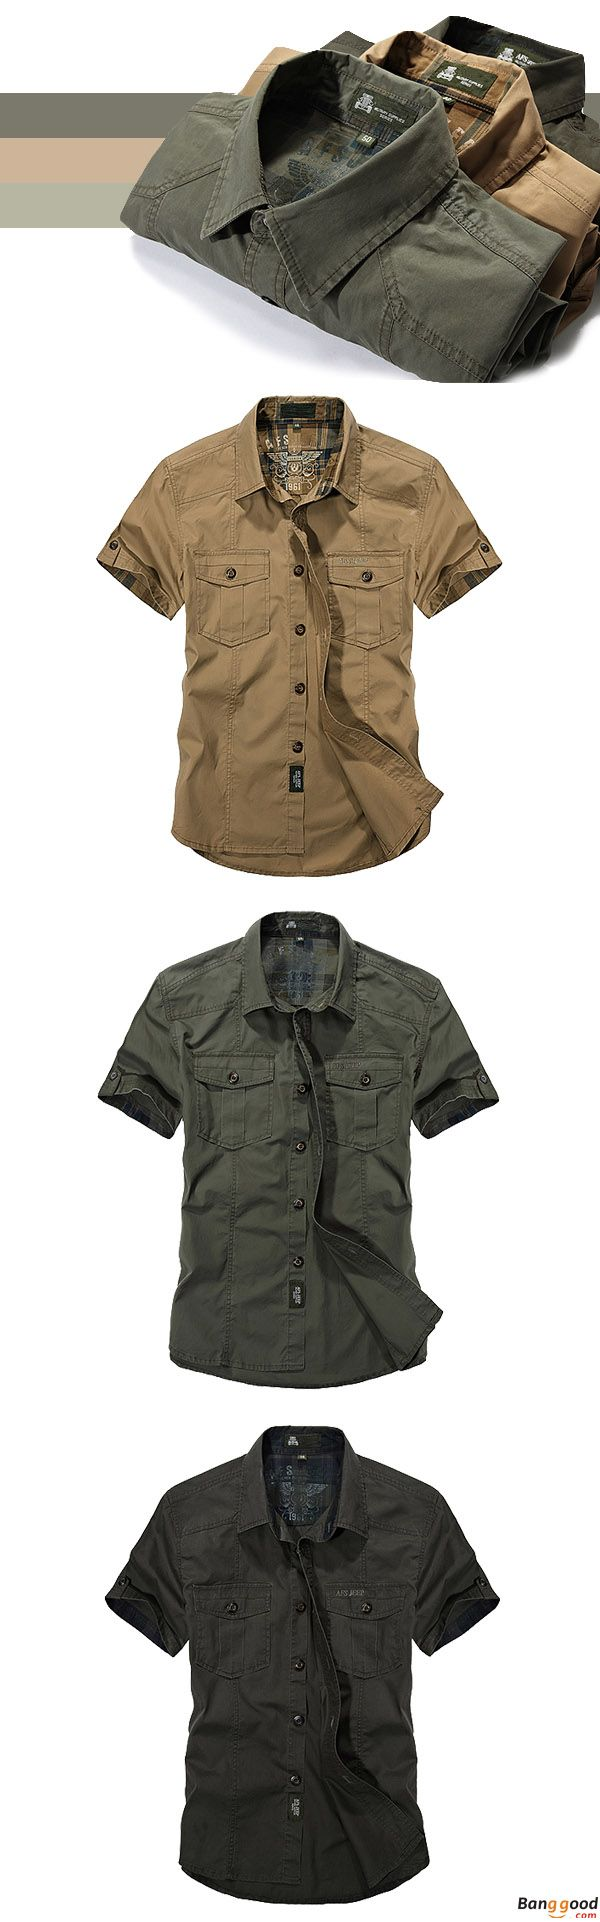 US$28.92 + Free Shipping. Hot Sale,  Shirts, Outdoor Shirts, Cotton Shirts, Breathable Shirts, Multi Pockets Shirts, Cargo Shirts, Short Sleeve Work Shirt for Men. Color: Khaki, Olive, Green. Have a Look and Fall in Love with This Quality Shirt.